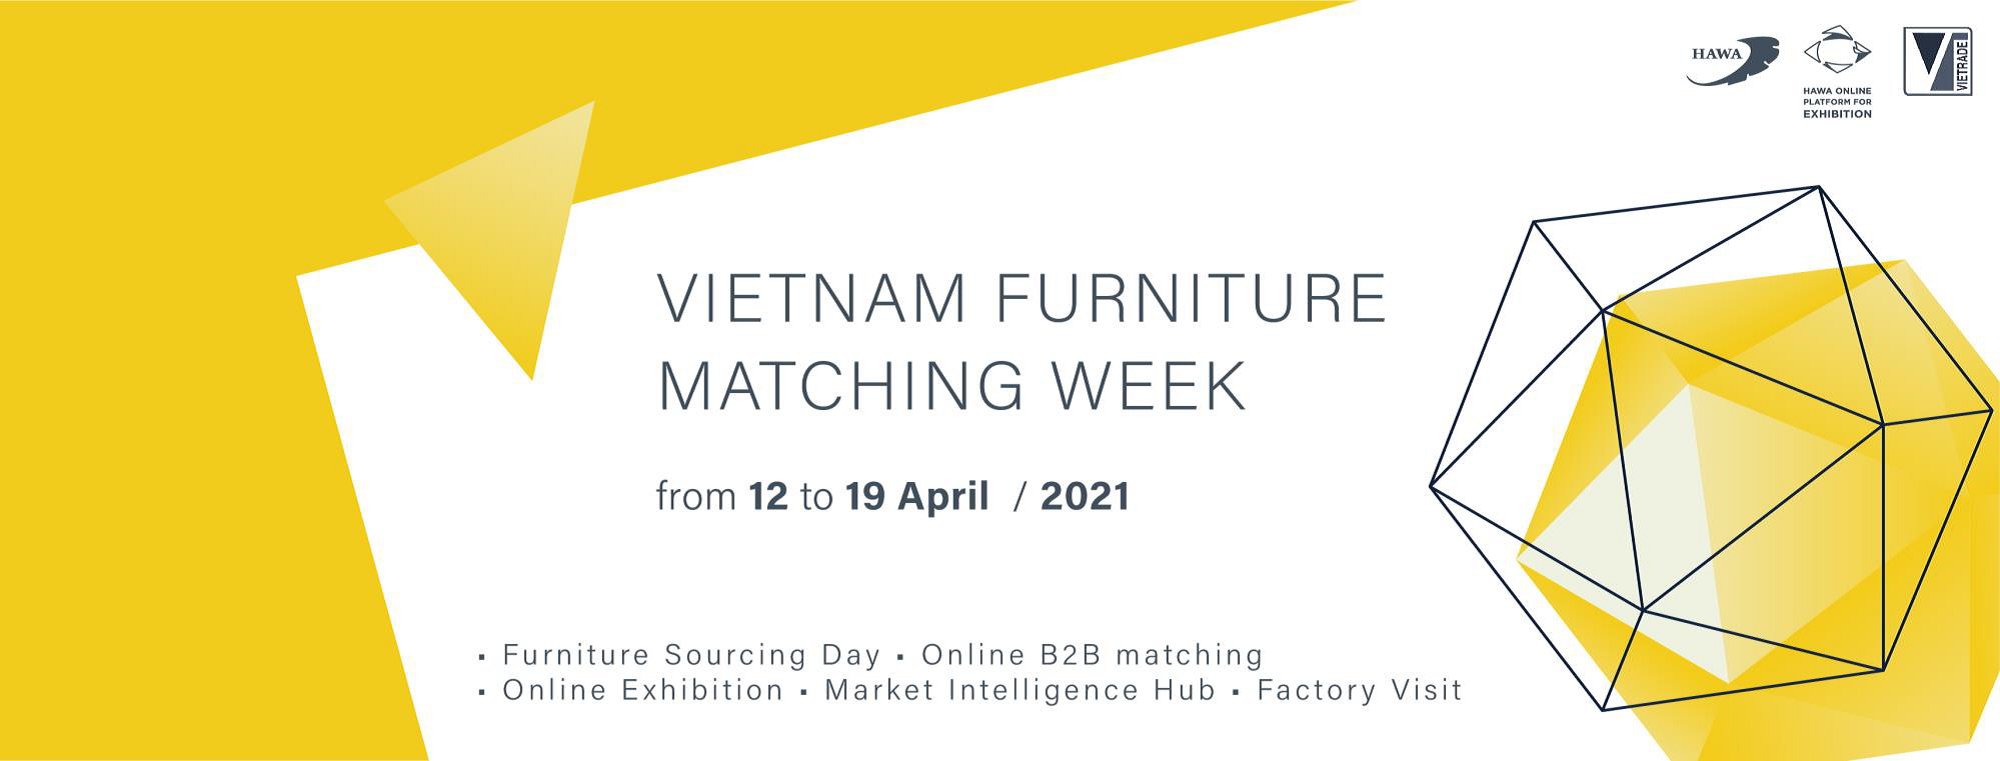 Vietnam Furniture Matching Week, April 12-19, 2021